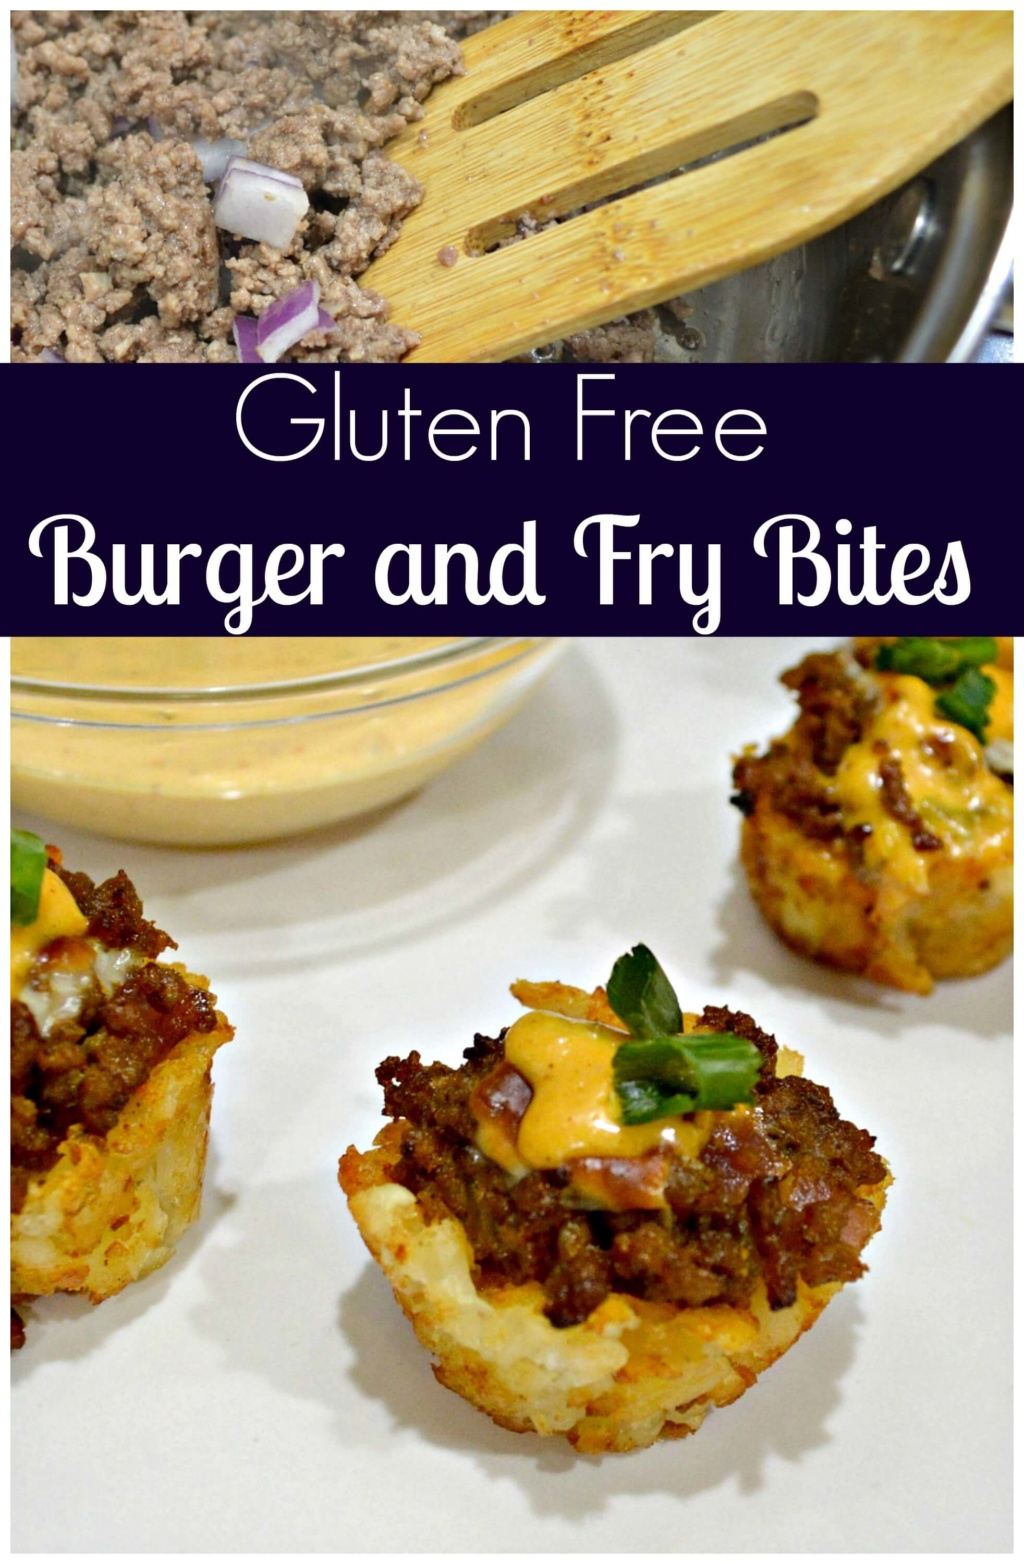 Gluten Free Burger and Fry Bites